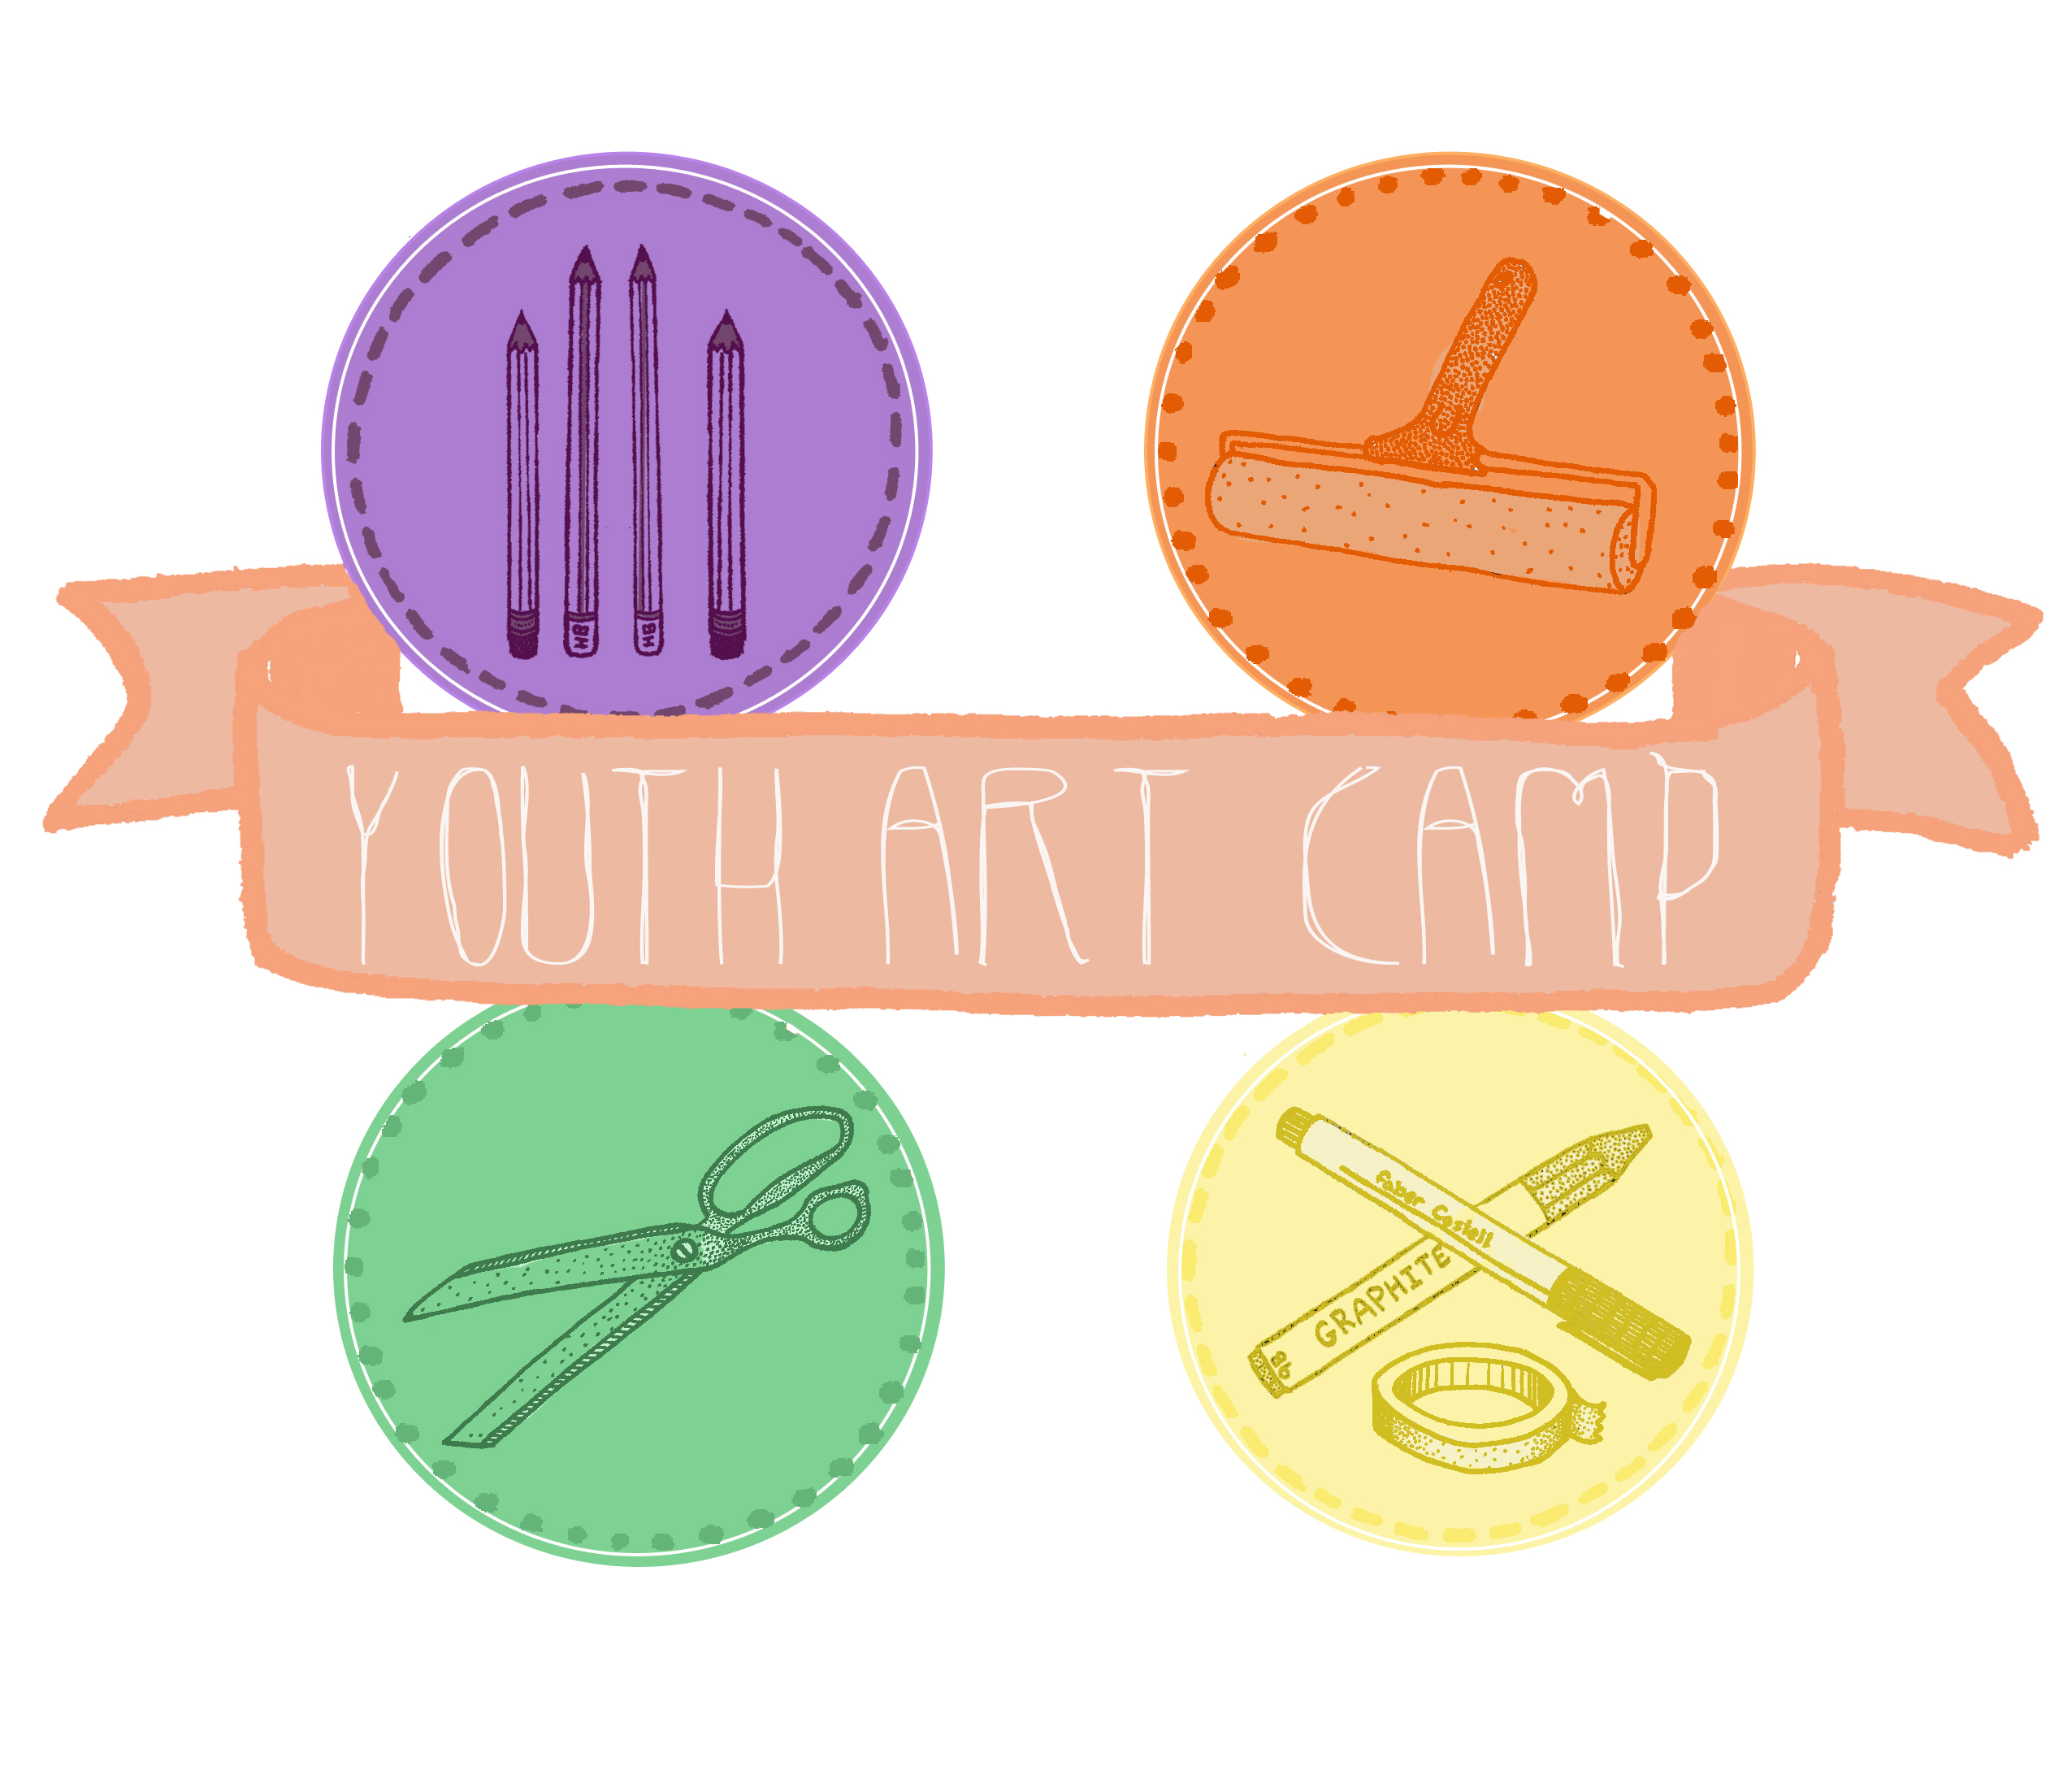 Youth Camp, Kids Camp, Art Camp, Craft, Art, Week-long, Creative, Education